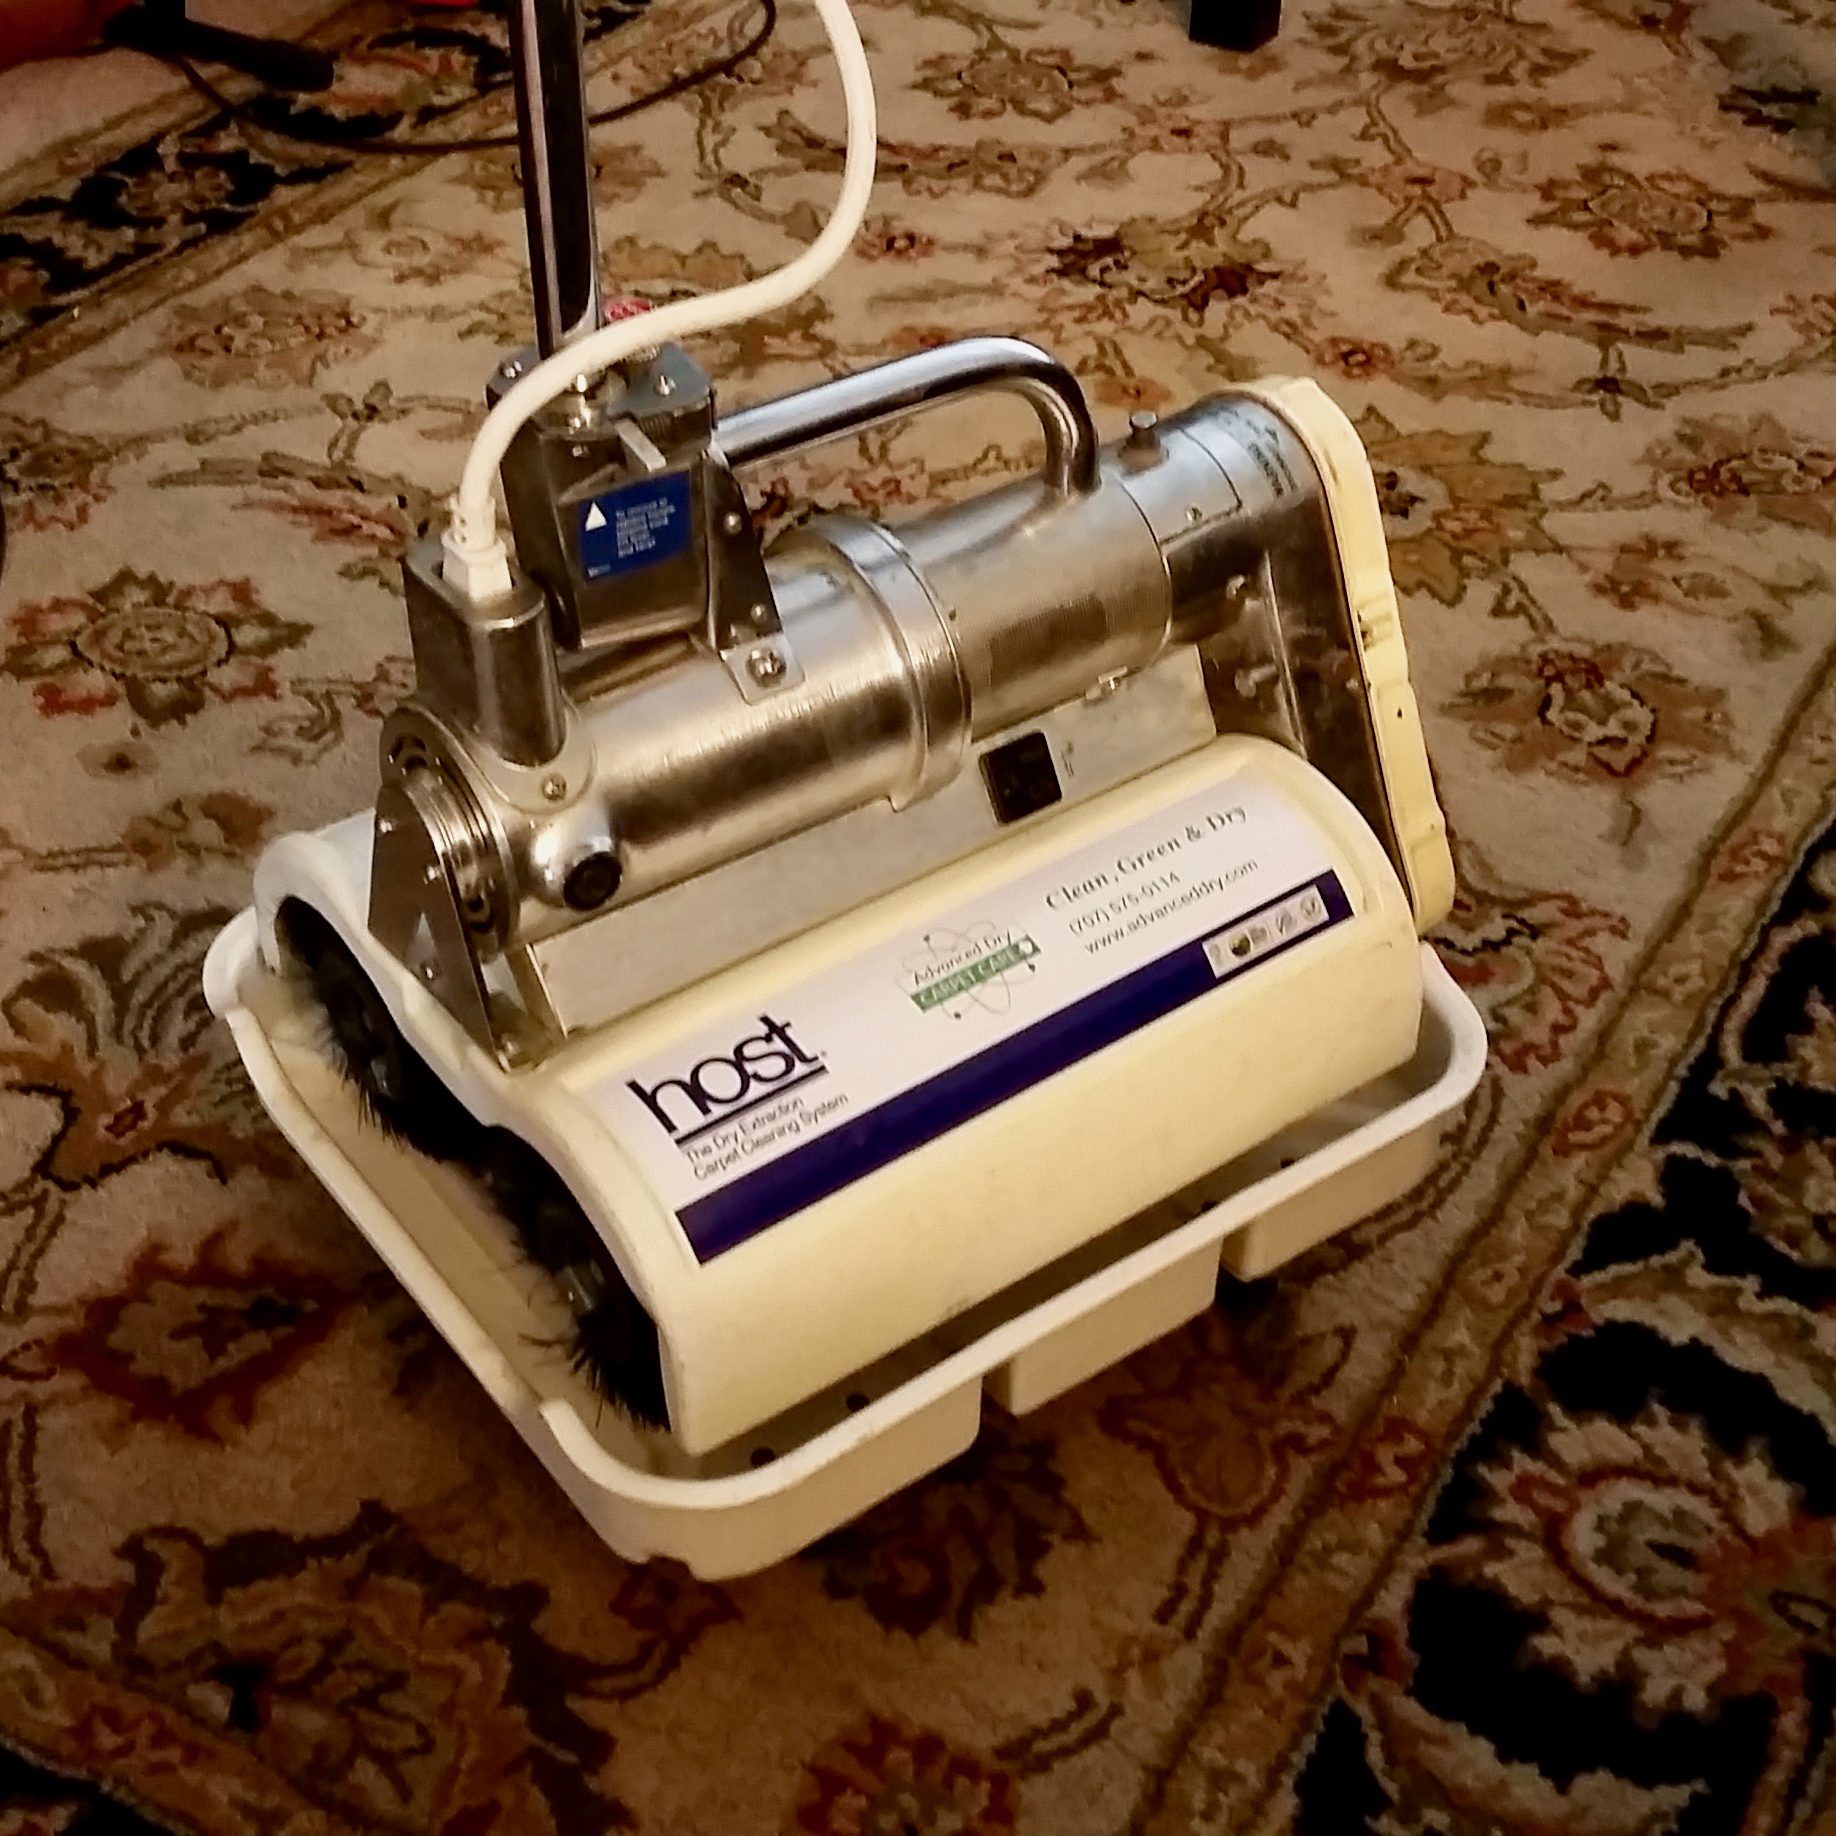 Advanced Dry Carpet Cleaning And Upholstery Cleaning